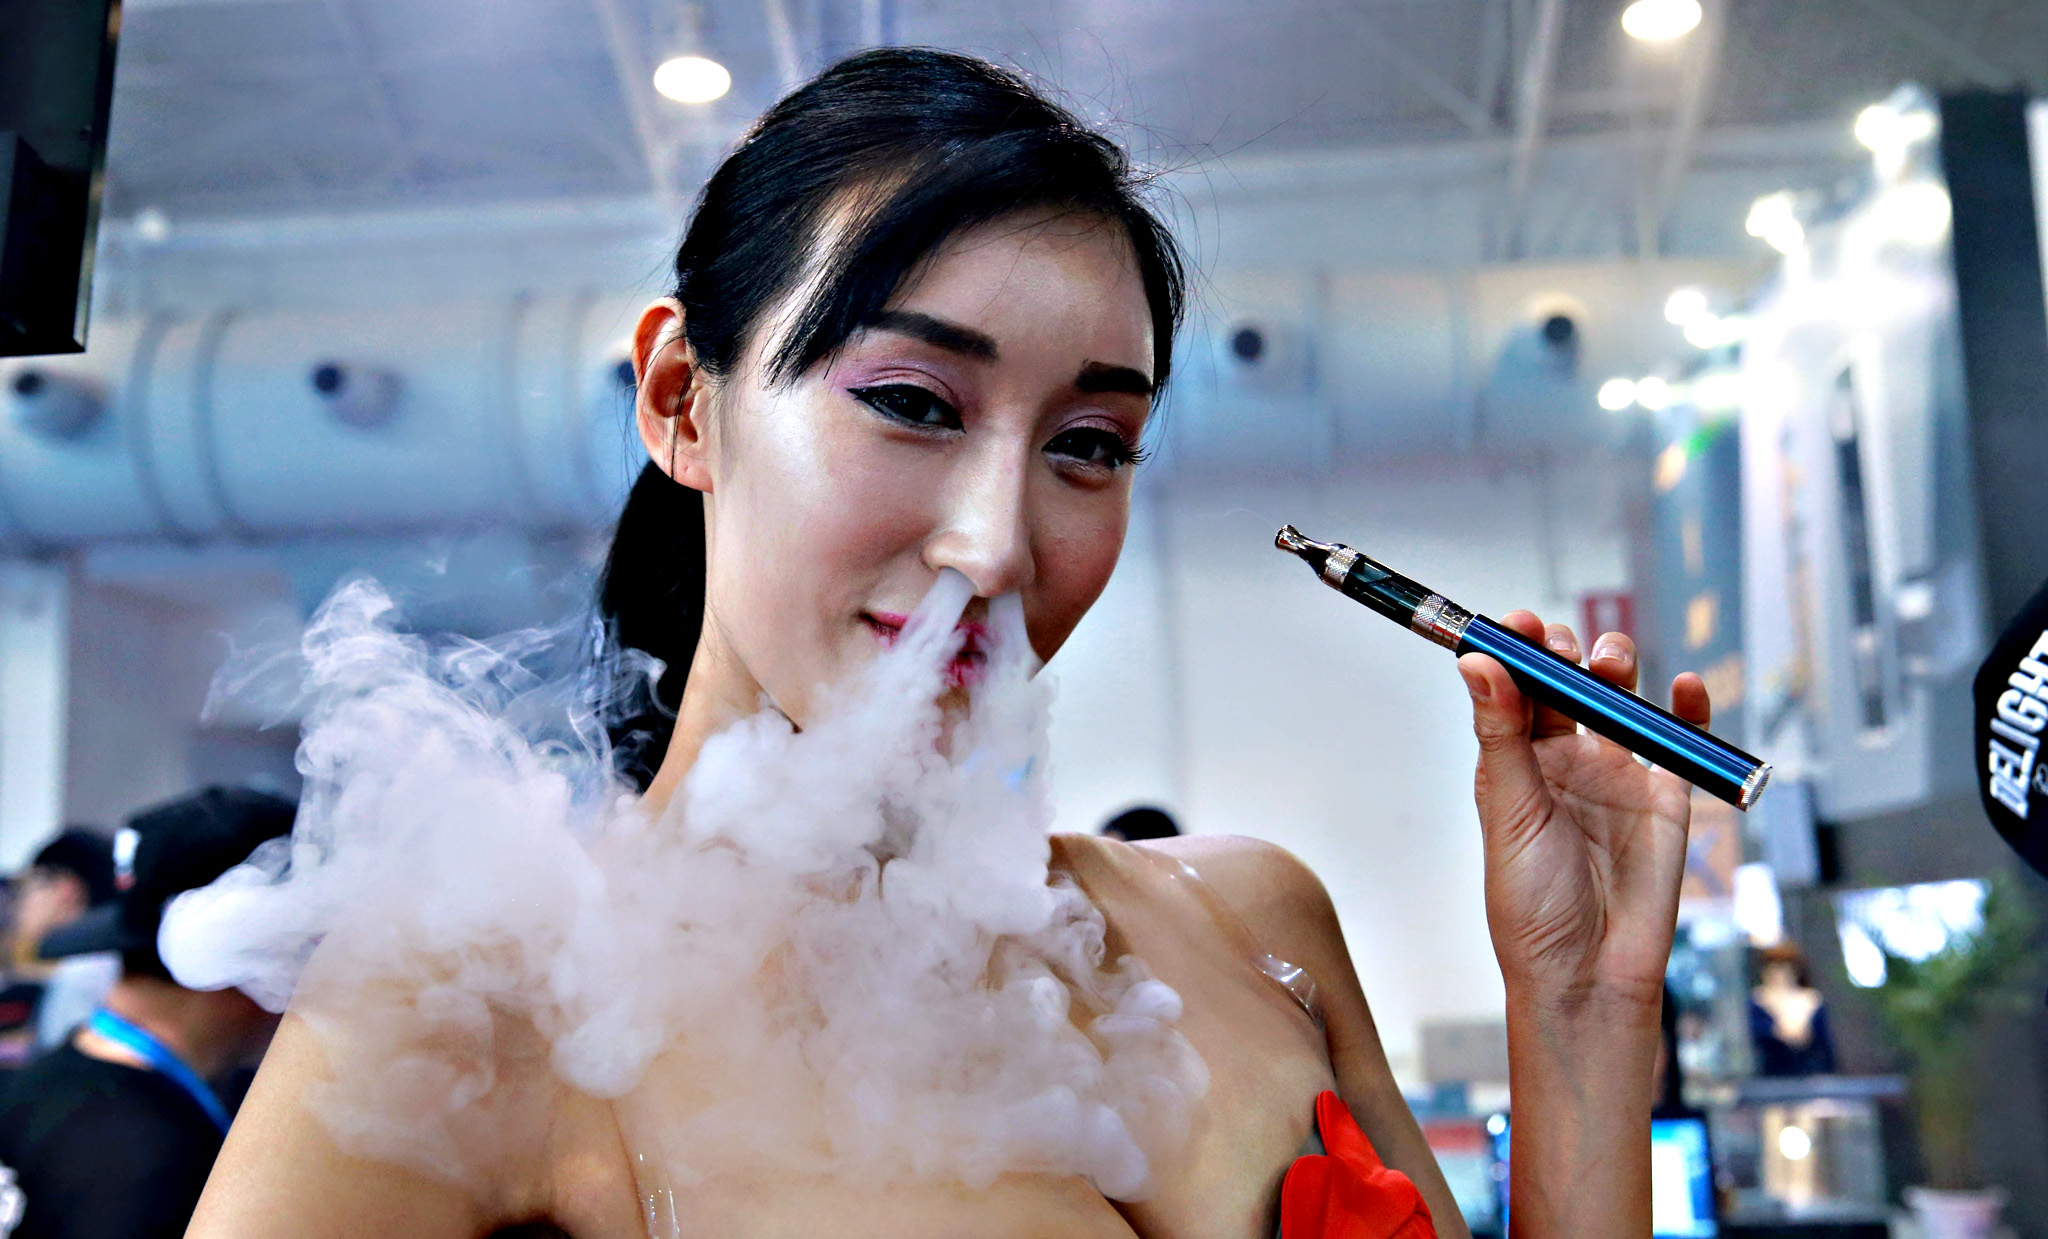 Sales staff exhaling vapour while demonstrating an electronic cigarette product at the Beijing International Vapor Distribution Alliance Expo, or the Vape China Expo, at the China International Exhibition Center in Beijing